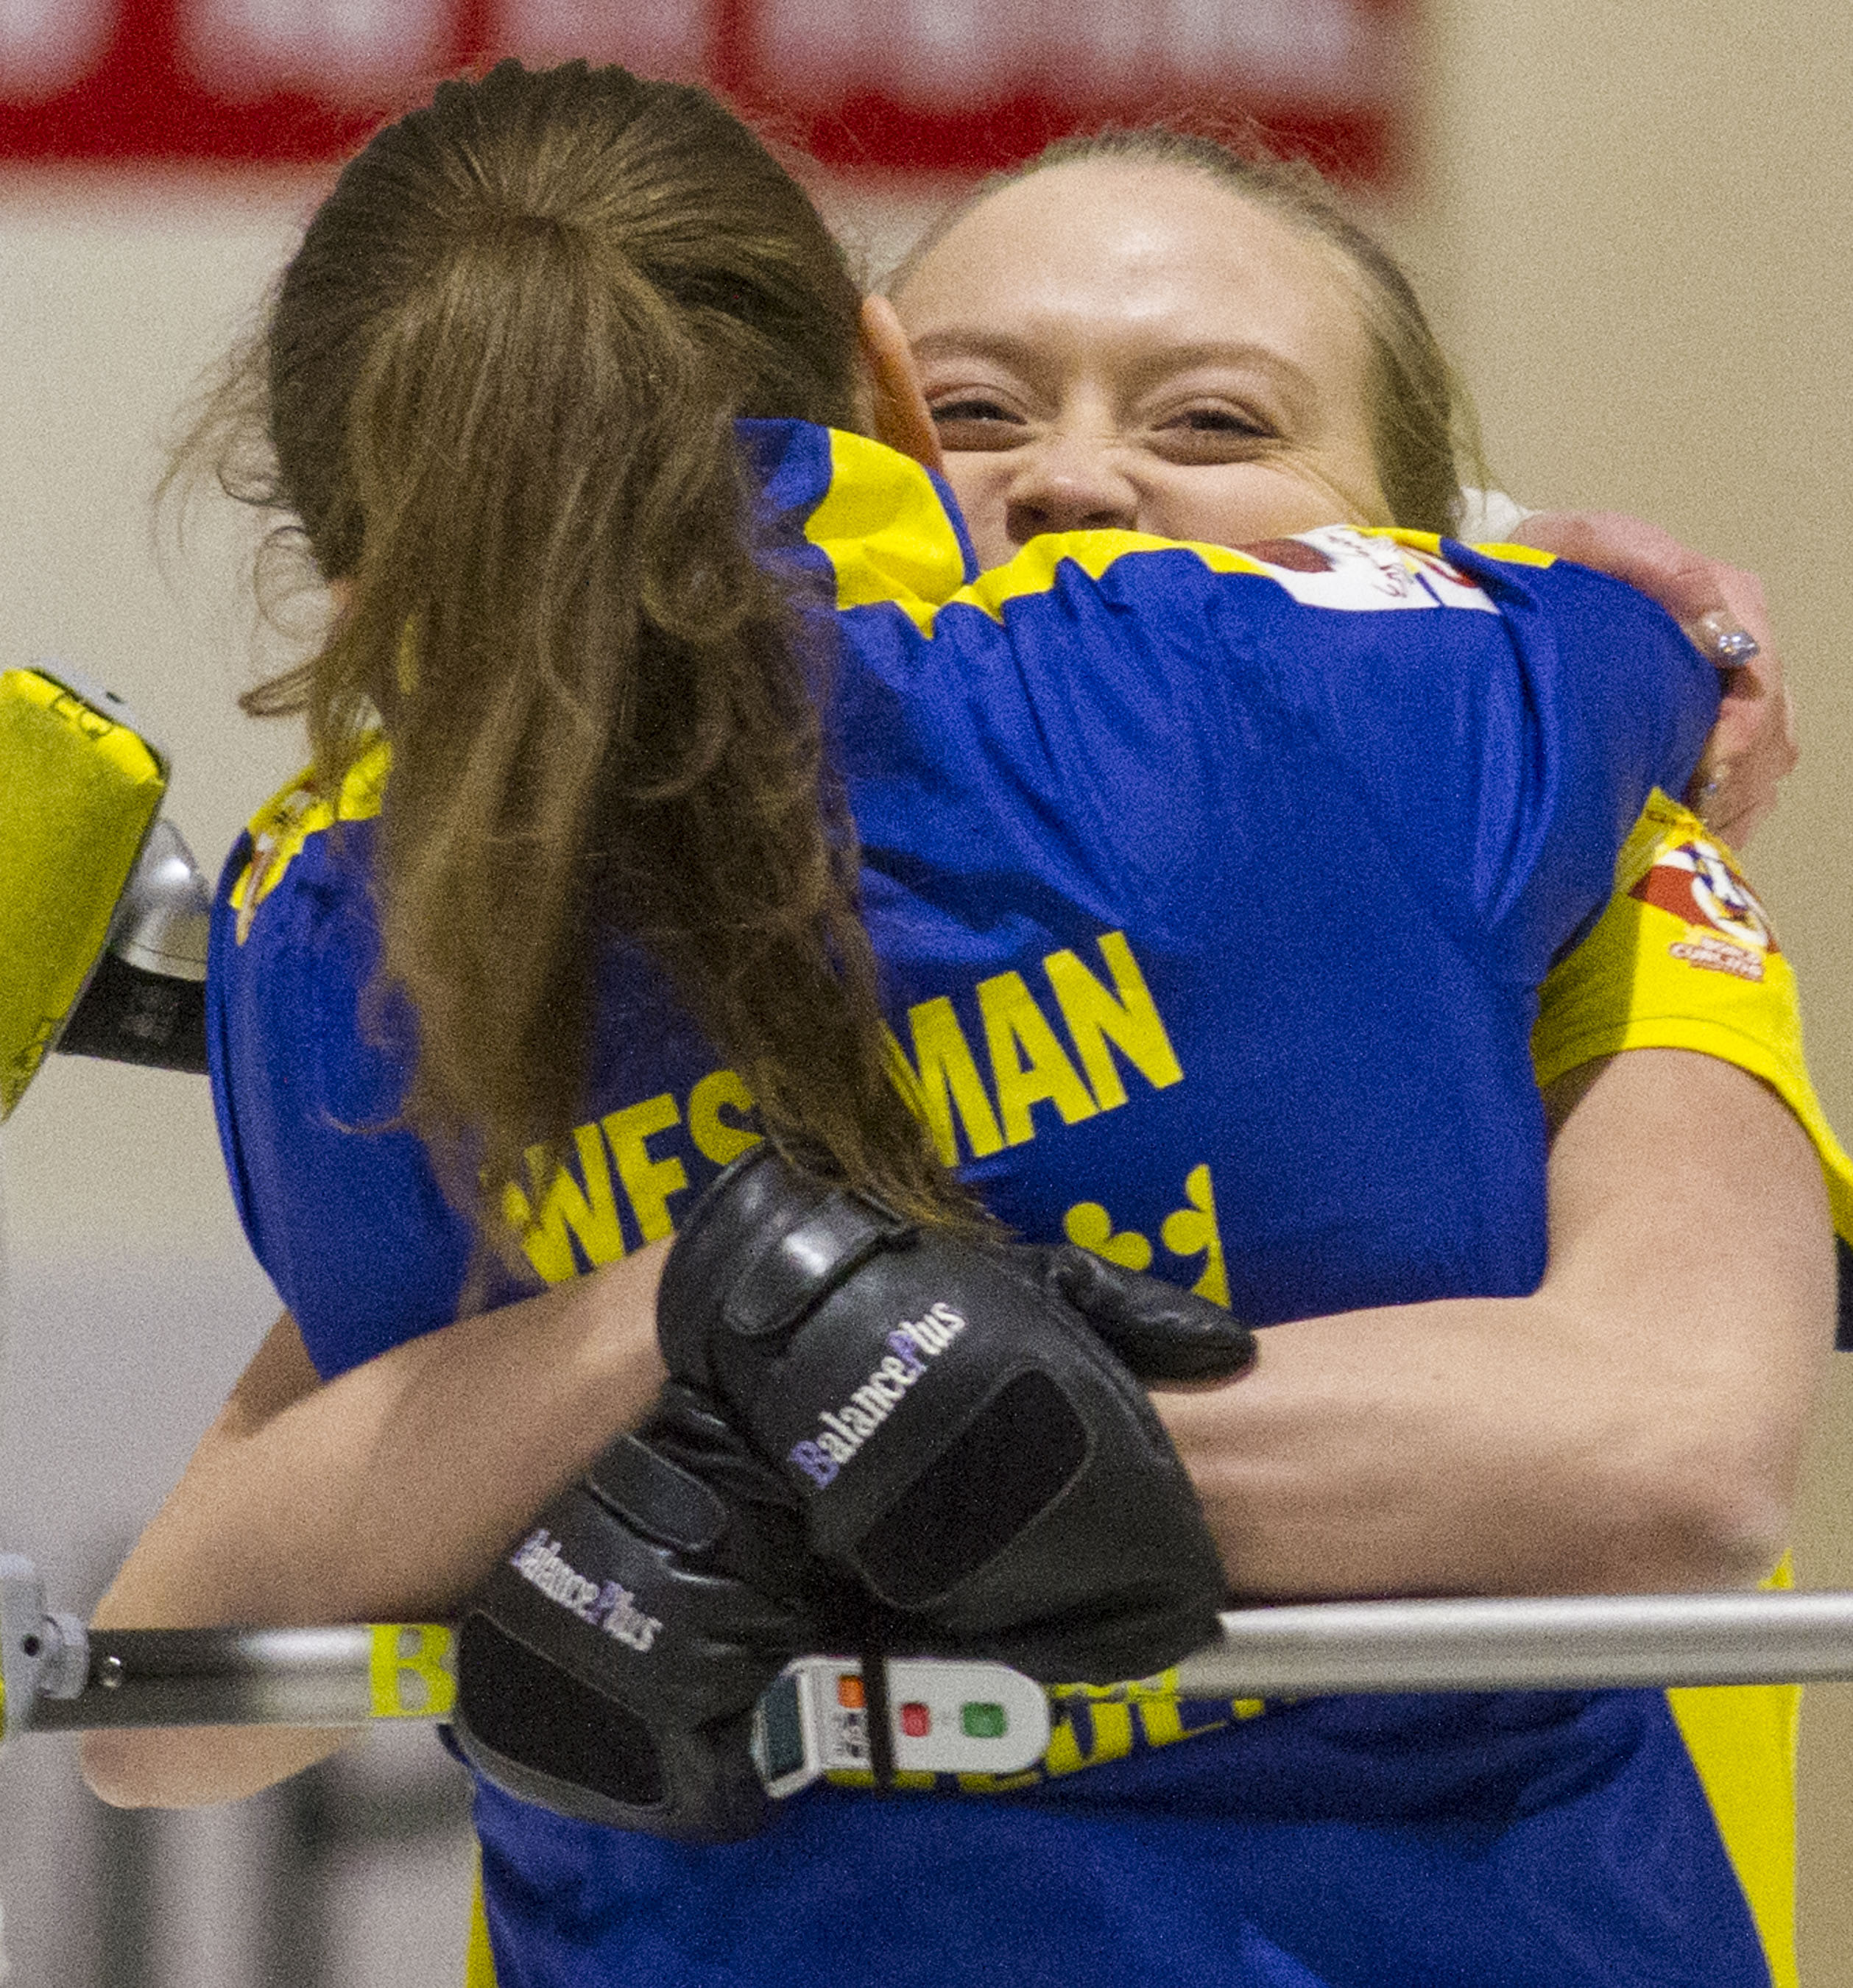 Women's session 17 at the VoIP Defender World Junior Curling Championships 2016 on March 11, 2016.